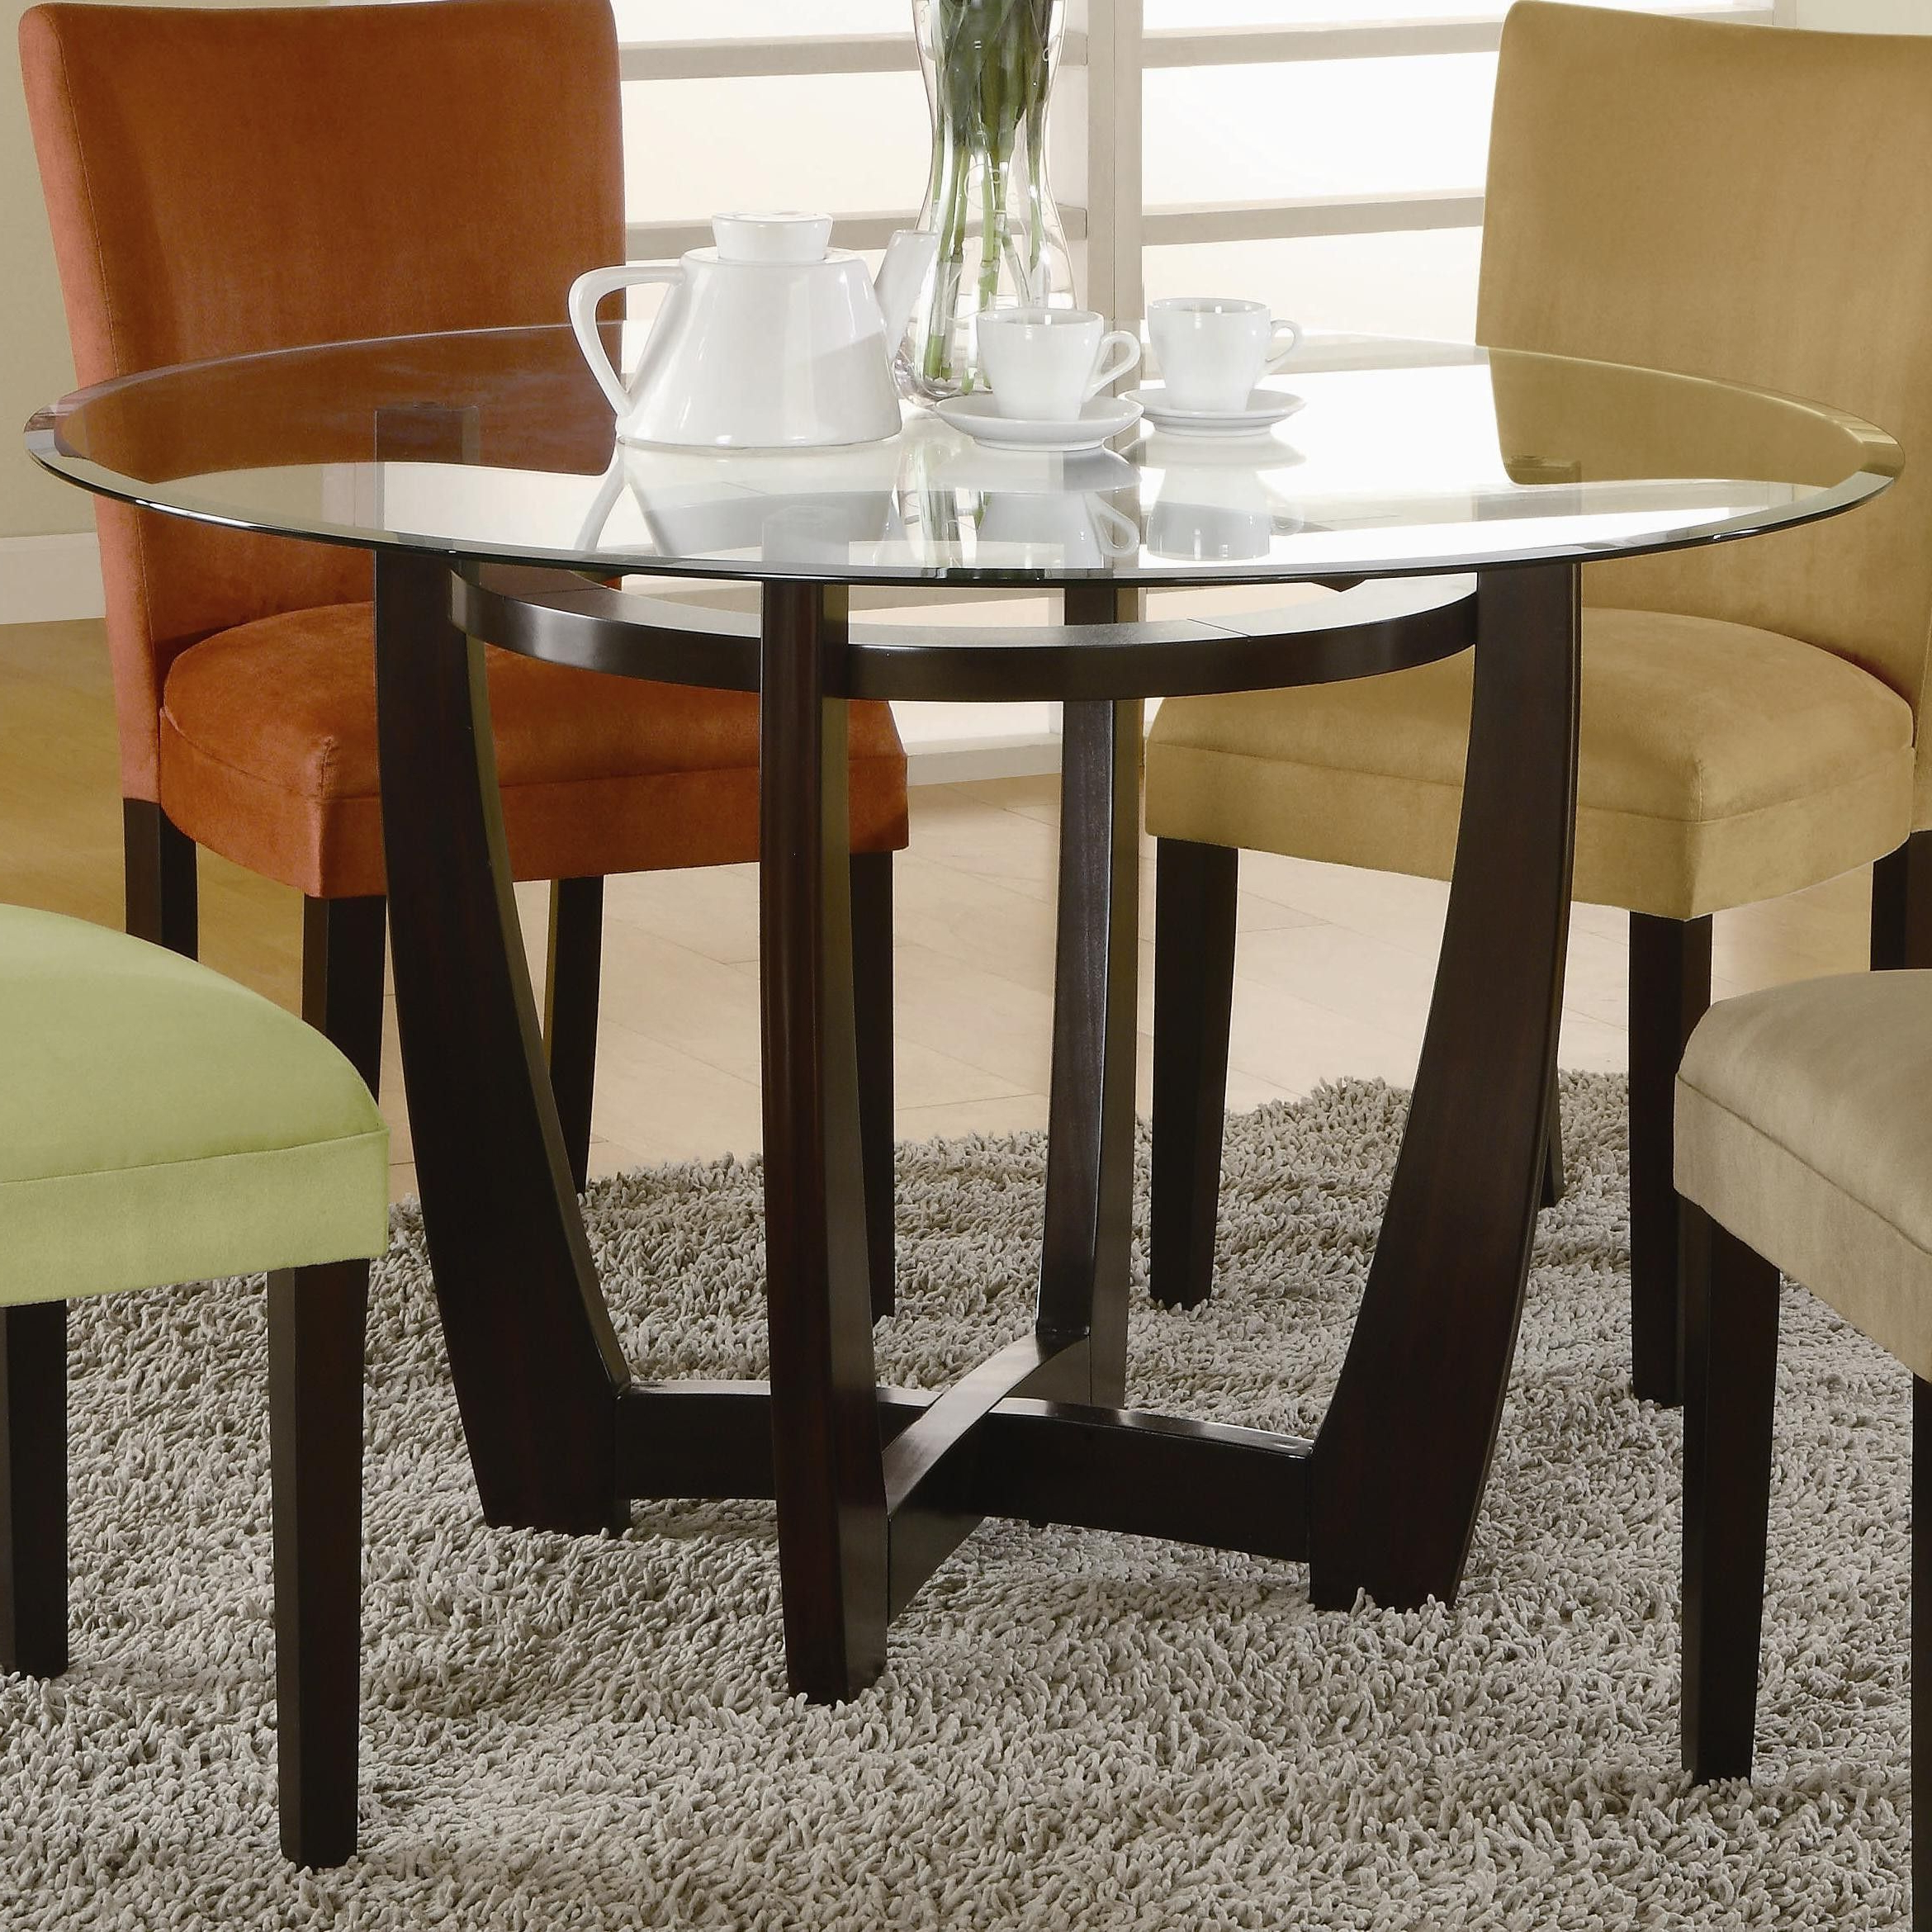 Round Glass Top Dining Tables Regarding Preferred Round Glass Top Dining Table With Wooden Base Home (View 10 of 25)